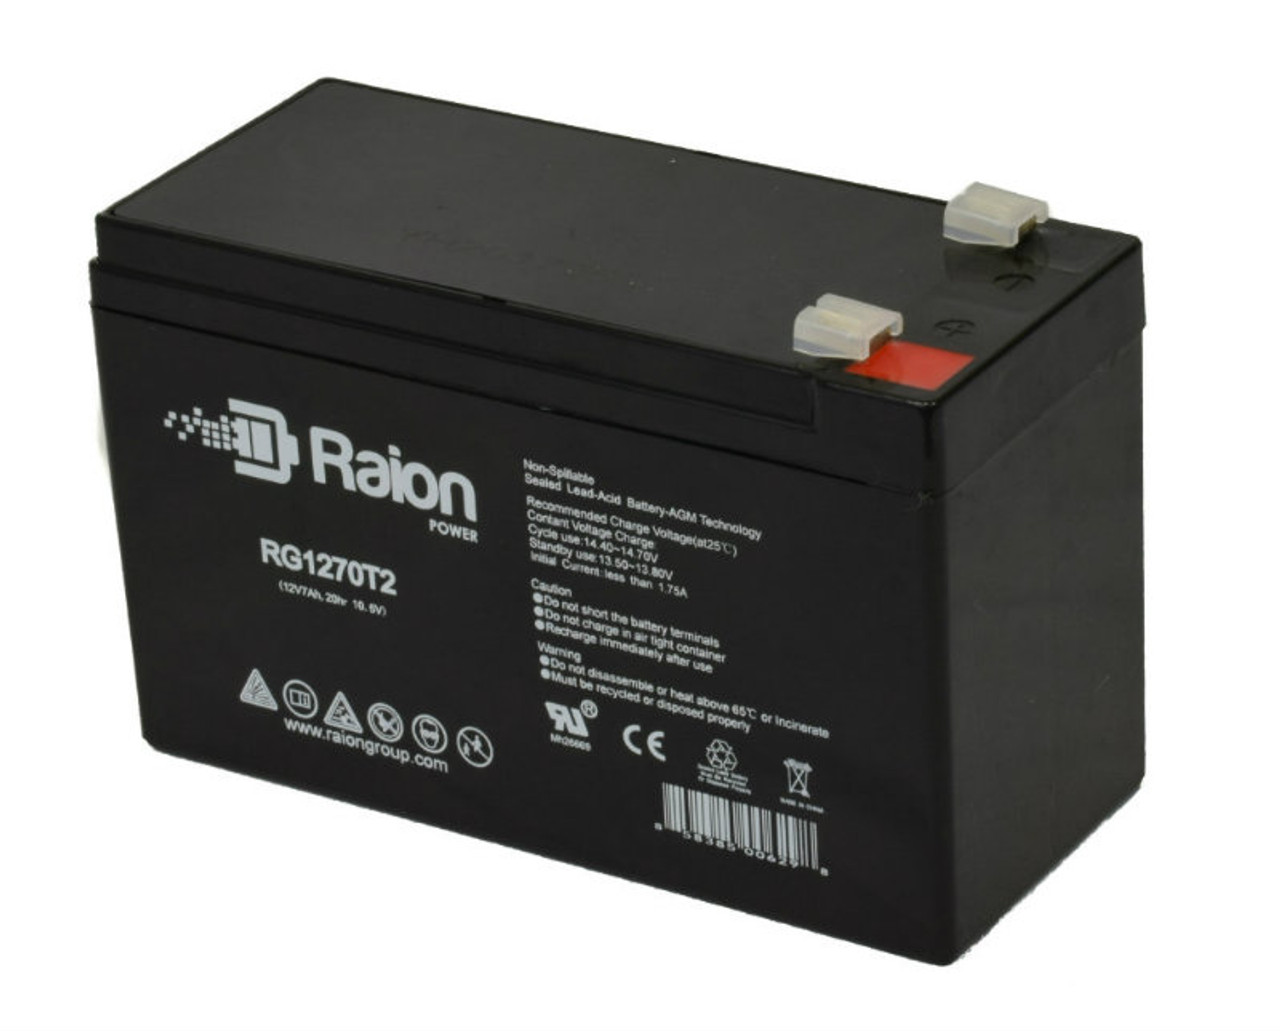 Raion Power RG1270T1 Replacement Battery for Long Way LW-6FM7.6J